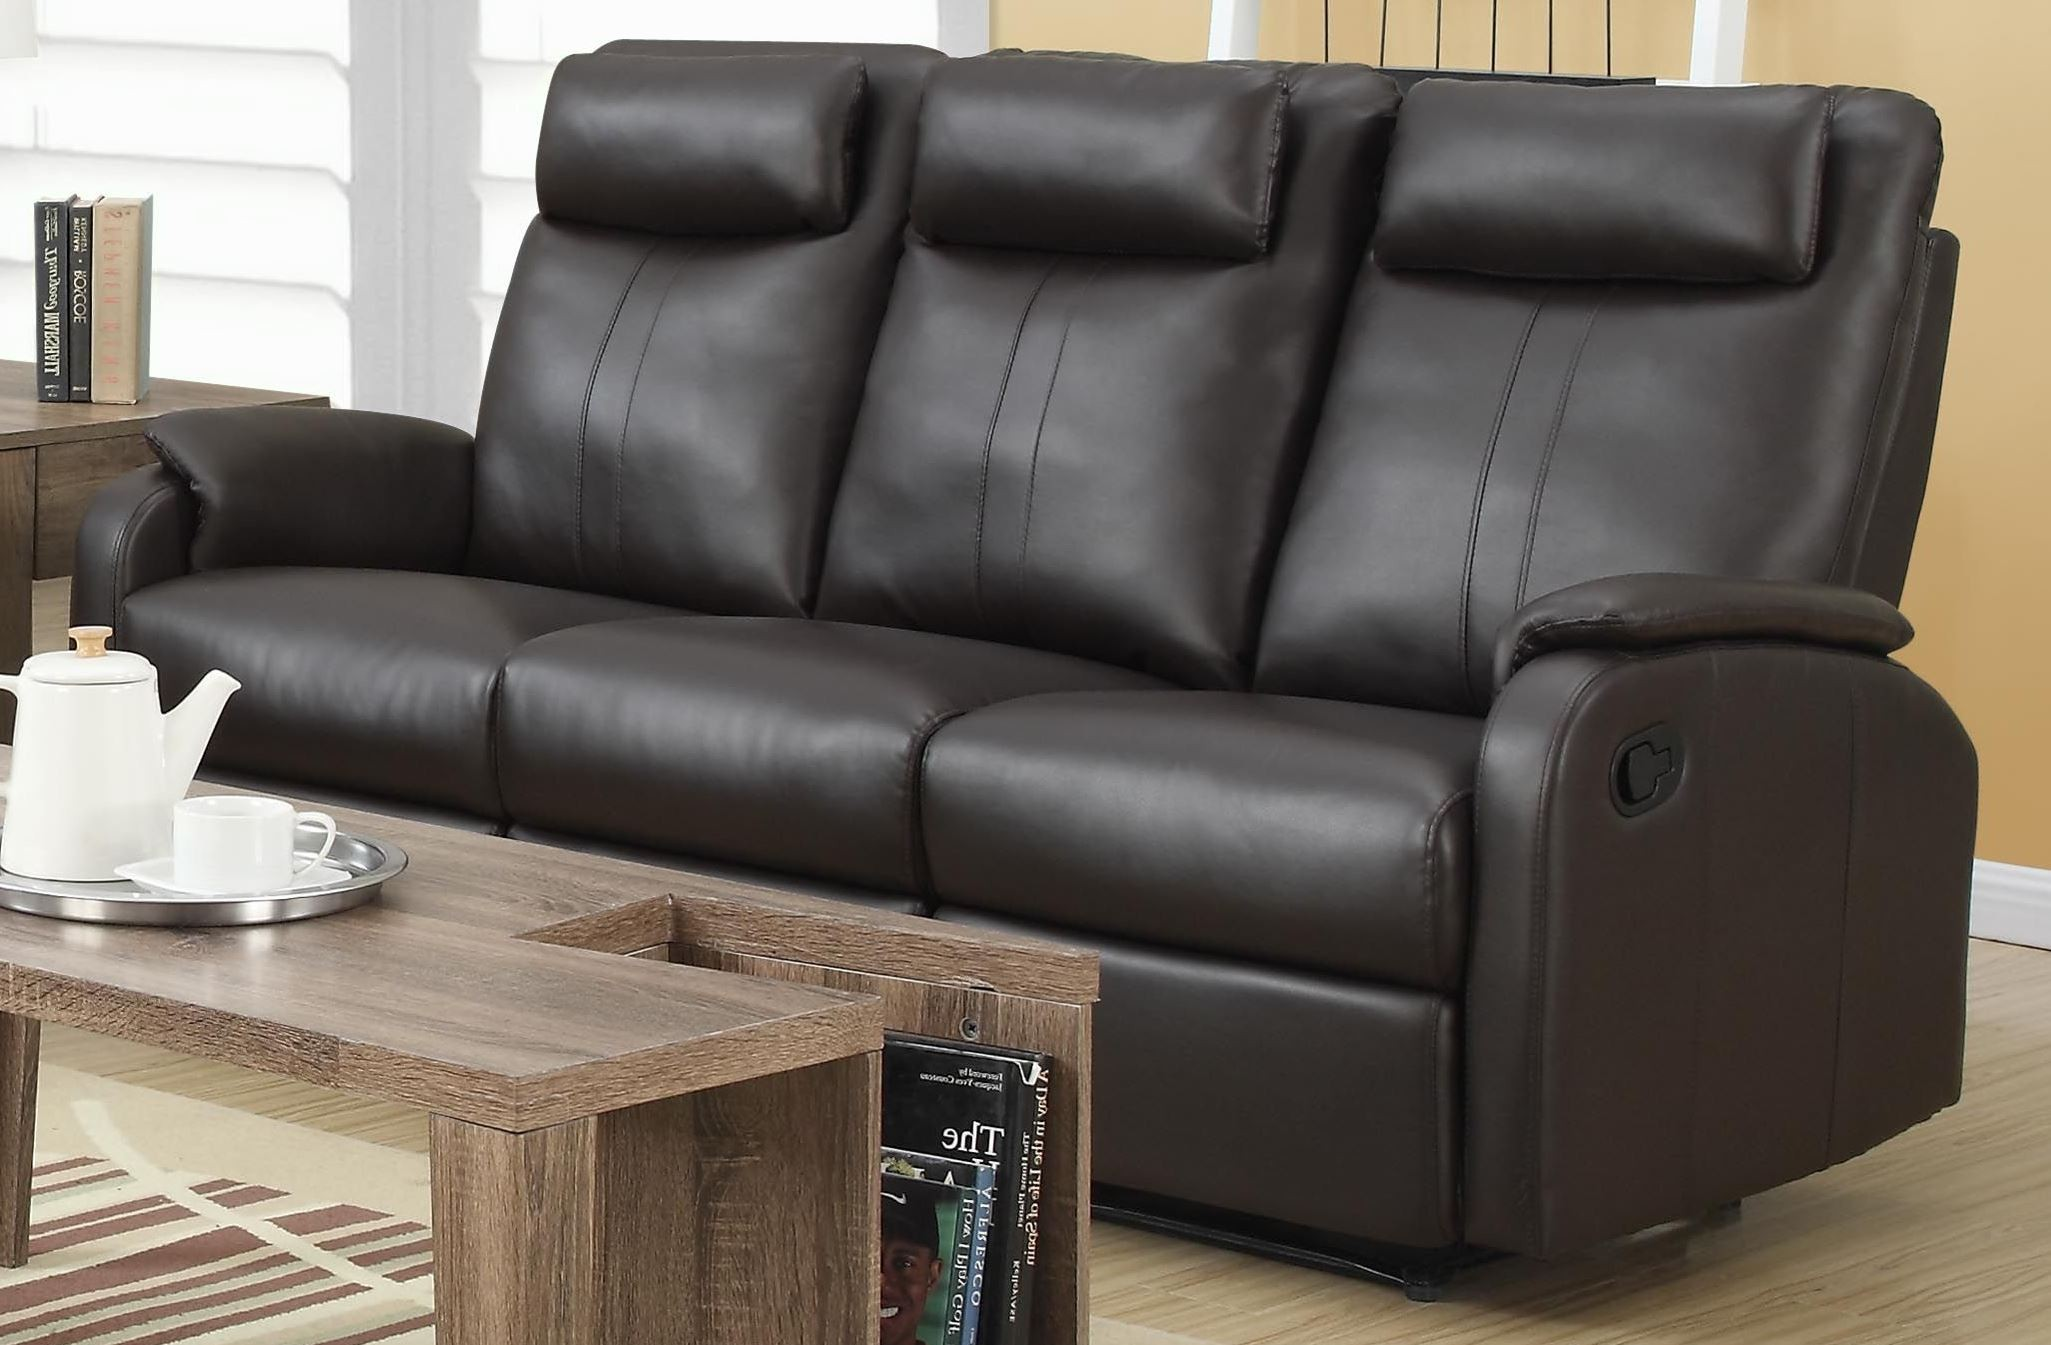 angus bonded leather reclining sofa 4ft 6 bed 81br 3 brown from monarch